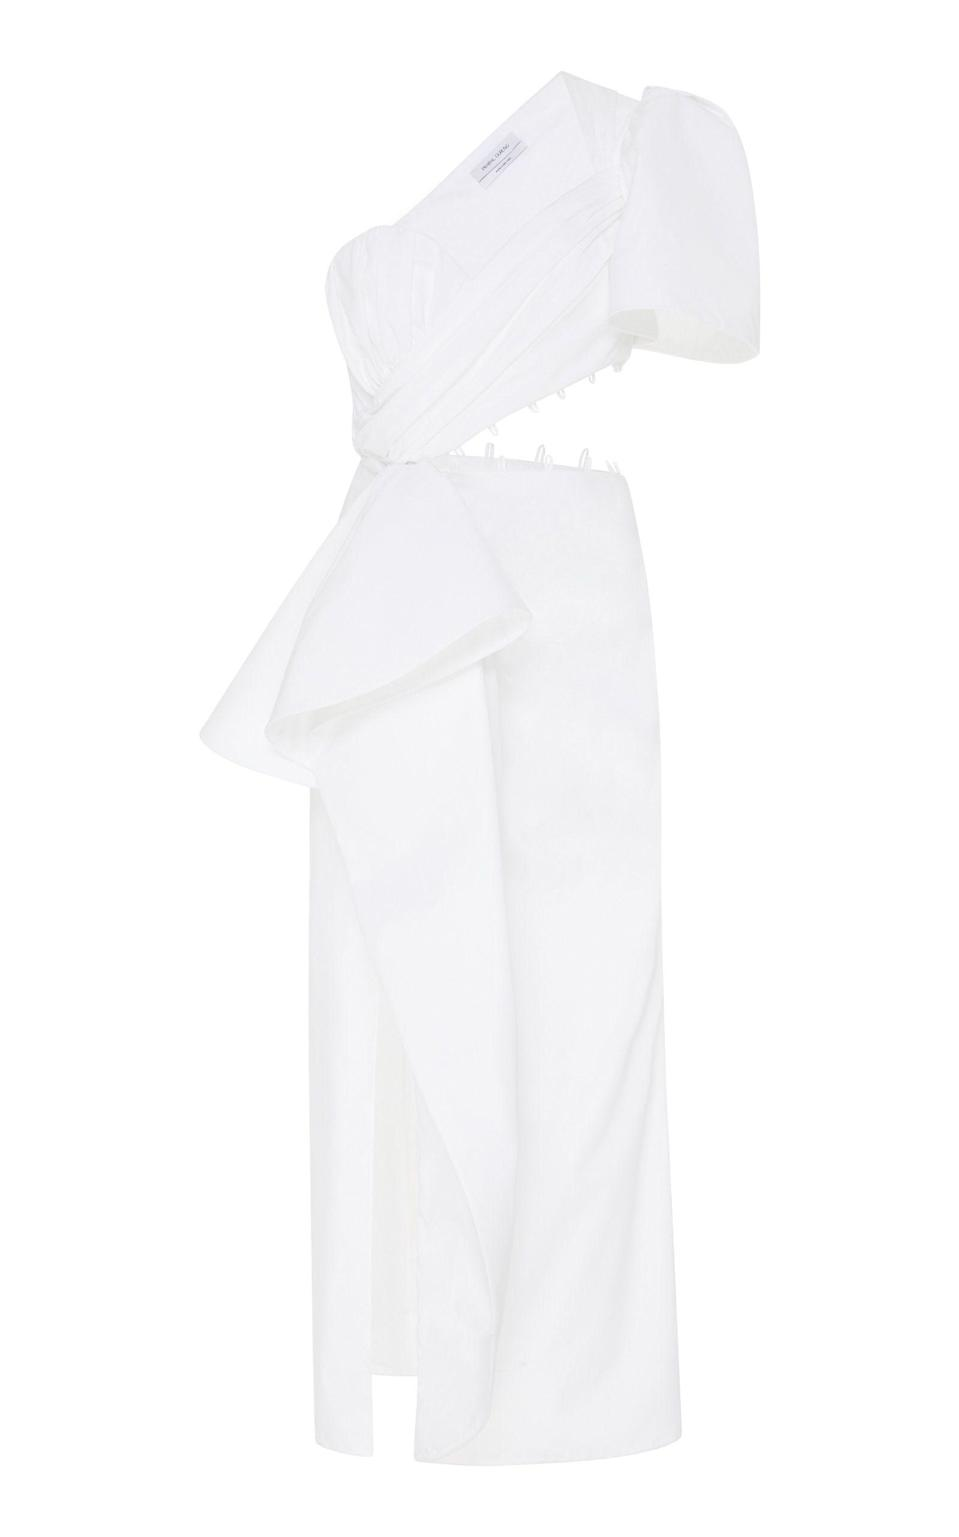 """<p><strong>Prabal Gurung</strong></p><p>modaoperandi.com</p><p><strong>$1125.00</strong></p><p><a href=""""https://go.redirectingat.com?id=74968X1596630&url=https%3A%2F%2Fwww.modaoperandi.com%2Fprabal-gurung-ss20%2Fone-shoulder-cotton-blend-cutout-dress&sref=https%3A%2F%2Fwww.harpersbazaar.com%2Fwedding%2Fbridal-fashion%2Fg7503%2Foff-the-rack-wedding-dresses%2F"""" rel=""""nofollow noopener"""" target=""""_blank"""" data-ylk=""""slk:SHOP NOW"""" class=""""link rapid-noclick-resp"""">SHOP NOW</a></p><p>Side cut-outs show off the results of pre-wedding workouts, while a puff sleeve and asymmetric wrap detail at the waist adds drama and interest to the silhouette. </p>"""